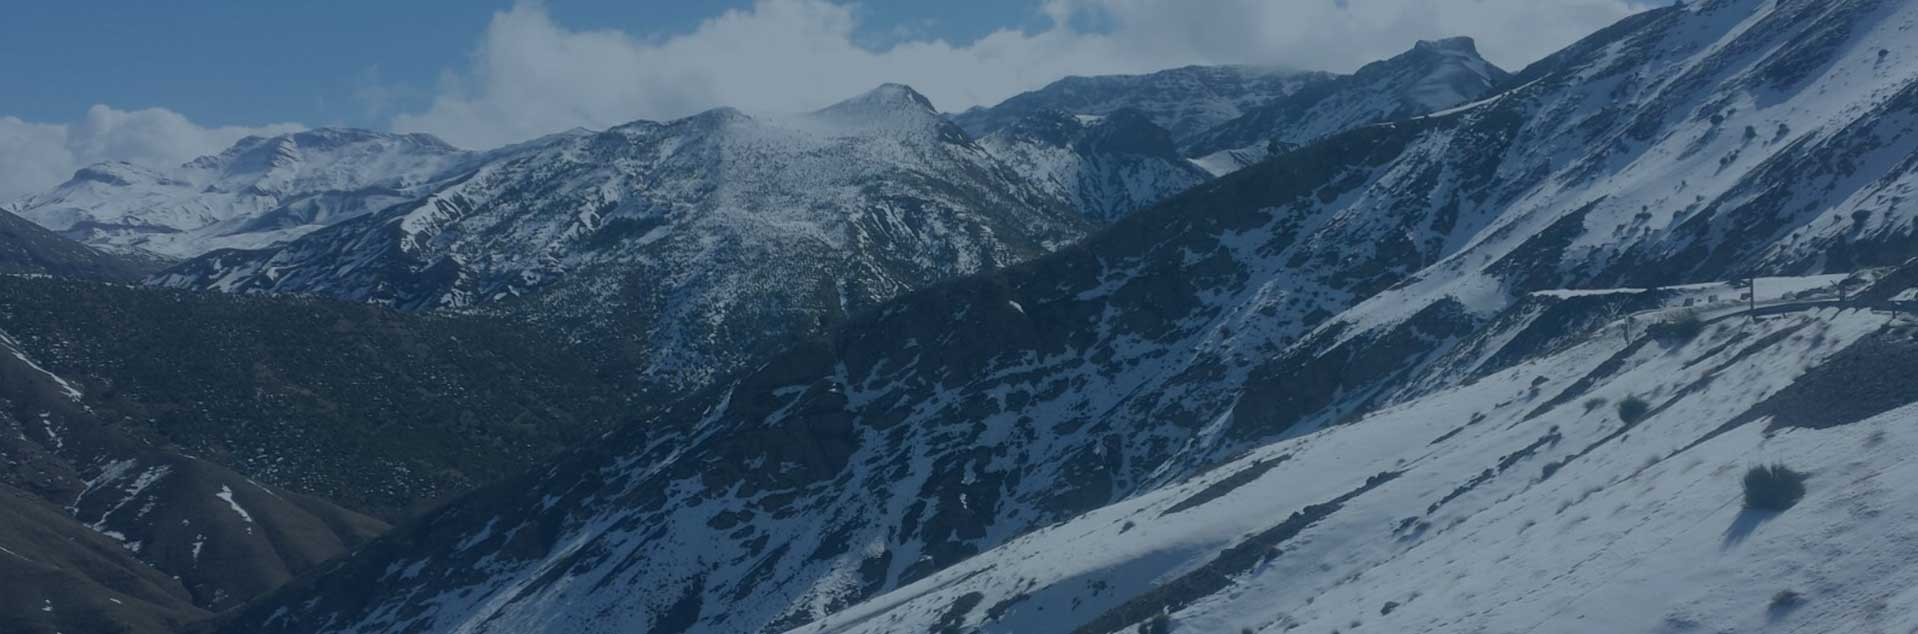 Header photo of Snowy Mountains in Morocco